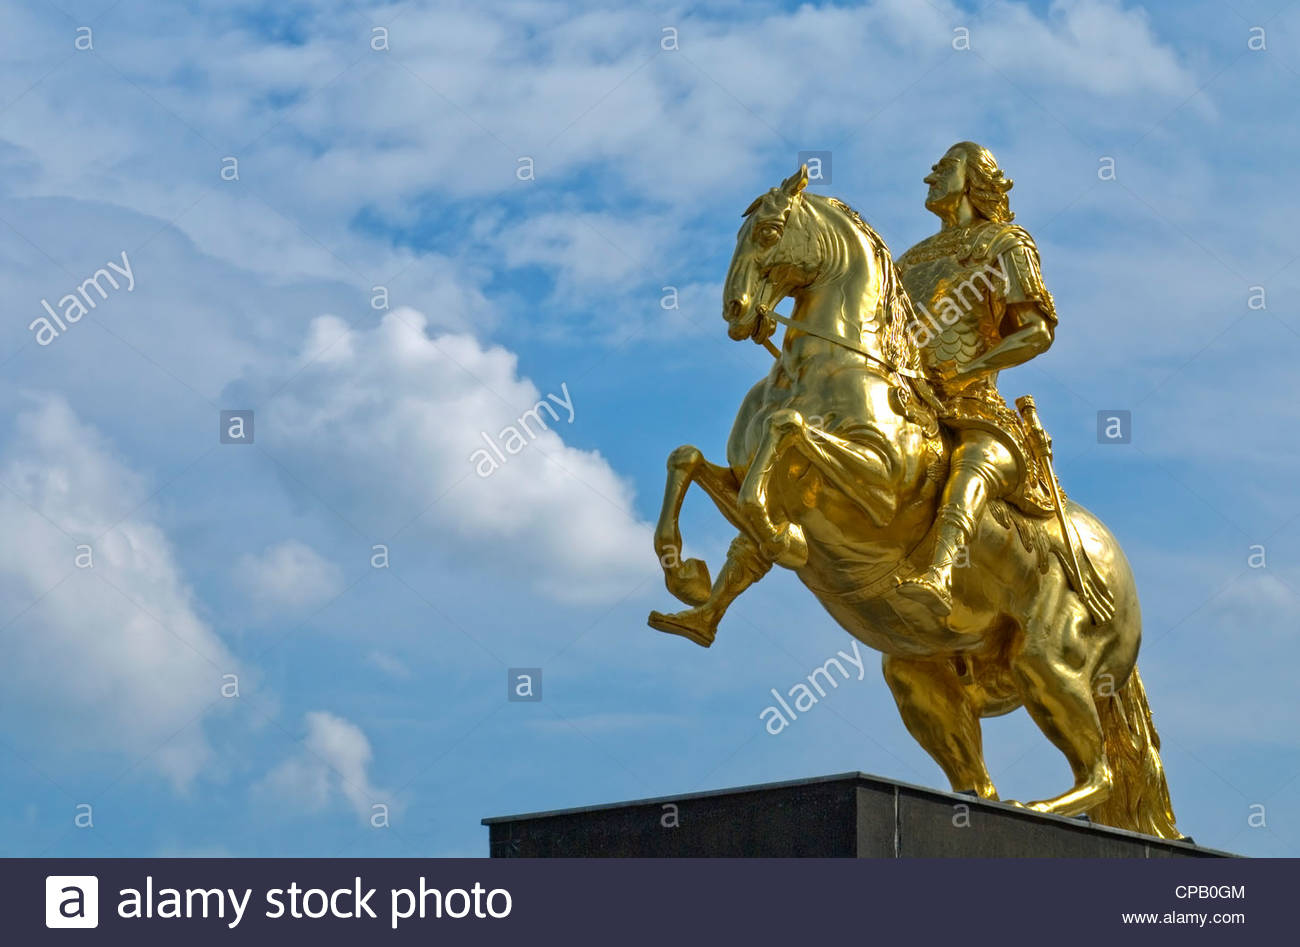 Golden Rider, Golden Gilded equestrian statue of King August the Great by Ludwig Wiedemann, Dresden, Germany - Stock Image